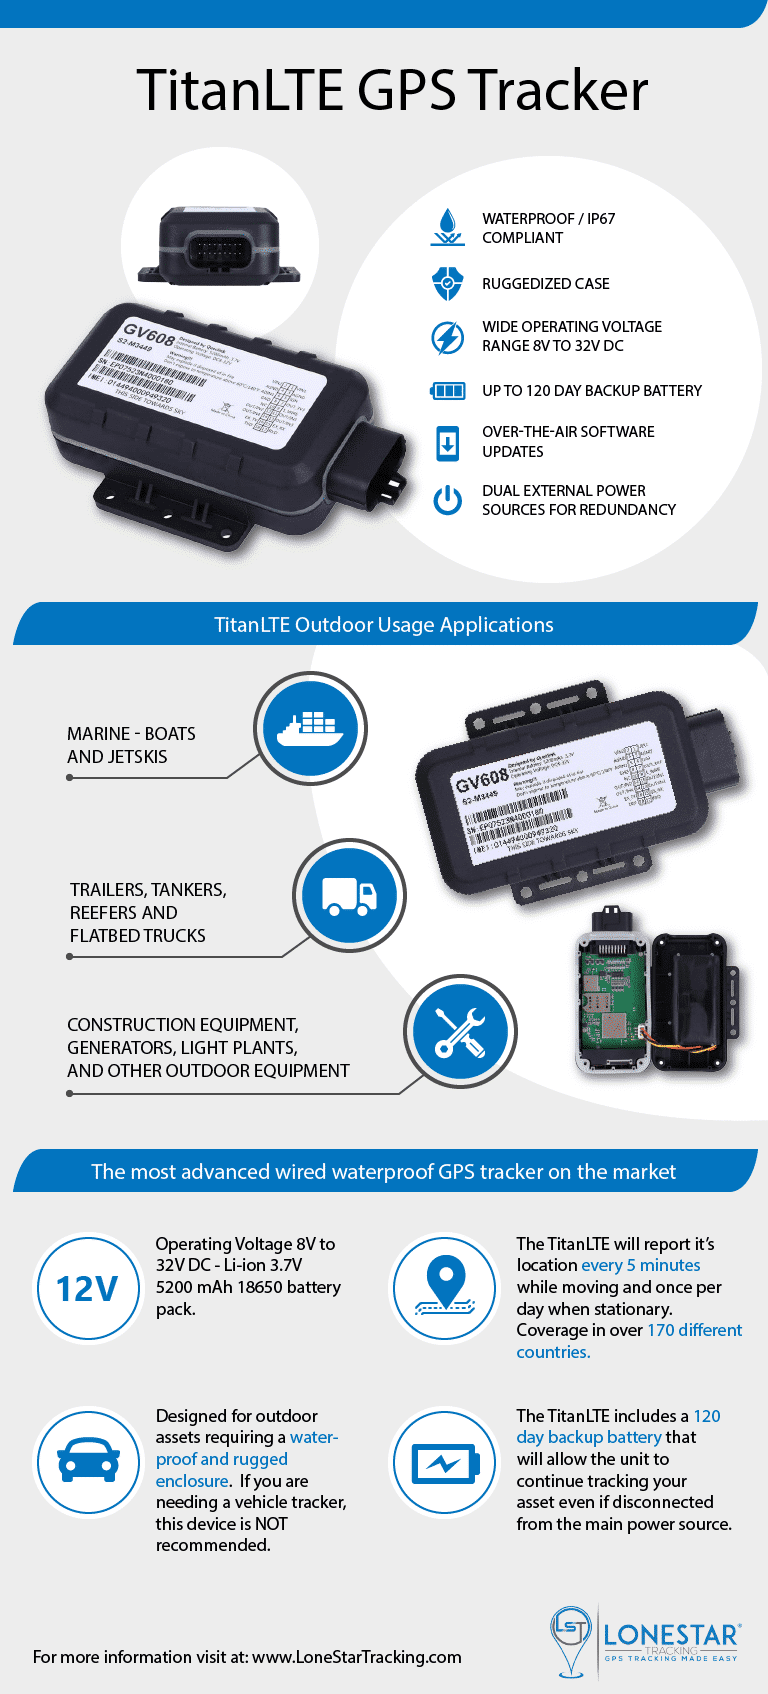 TItanLTE 4G Waterproof Trailer GPS Tracker - No Monthly Fees!